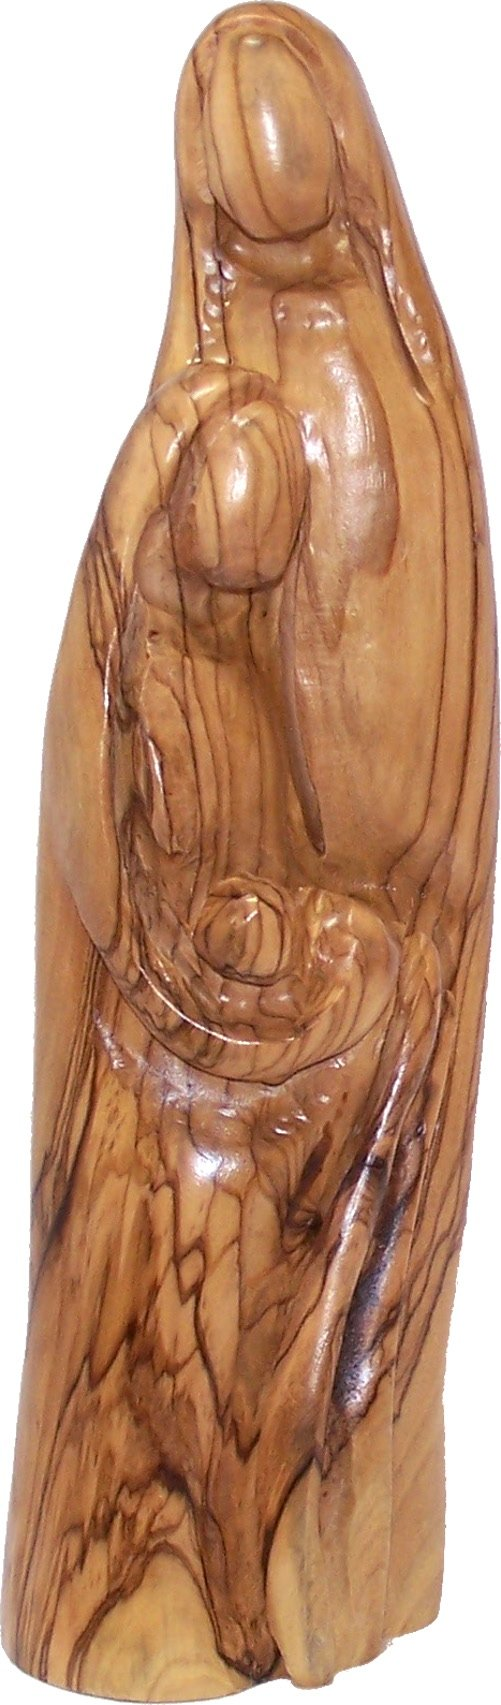 Holy Land Market Olive Wood Holy Family Statue (9.6 Inches)